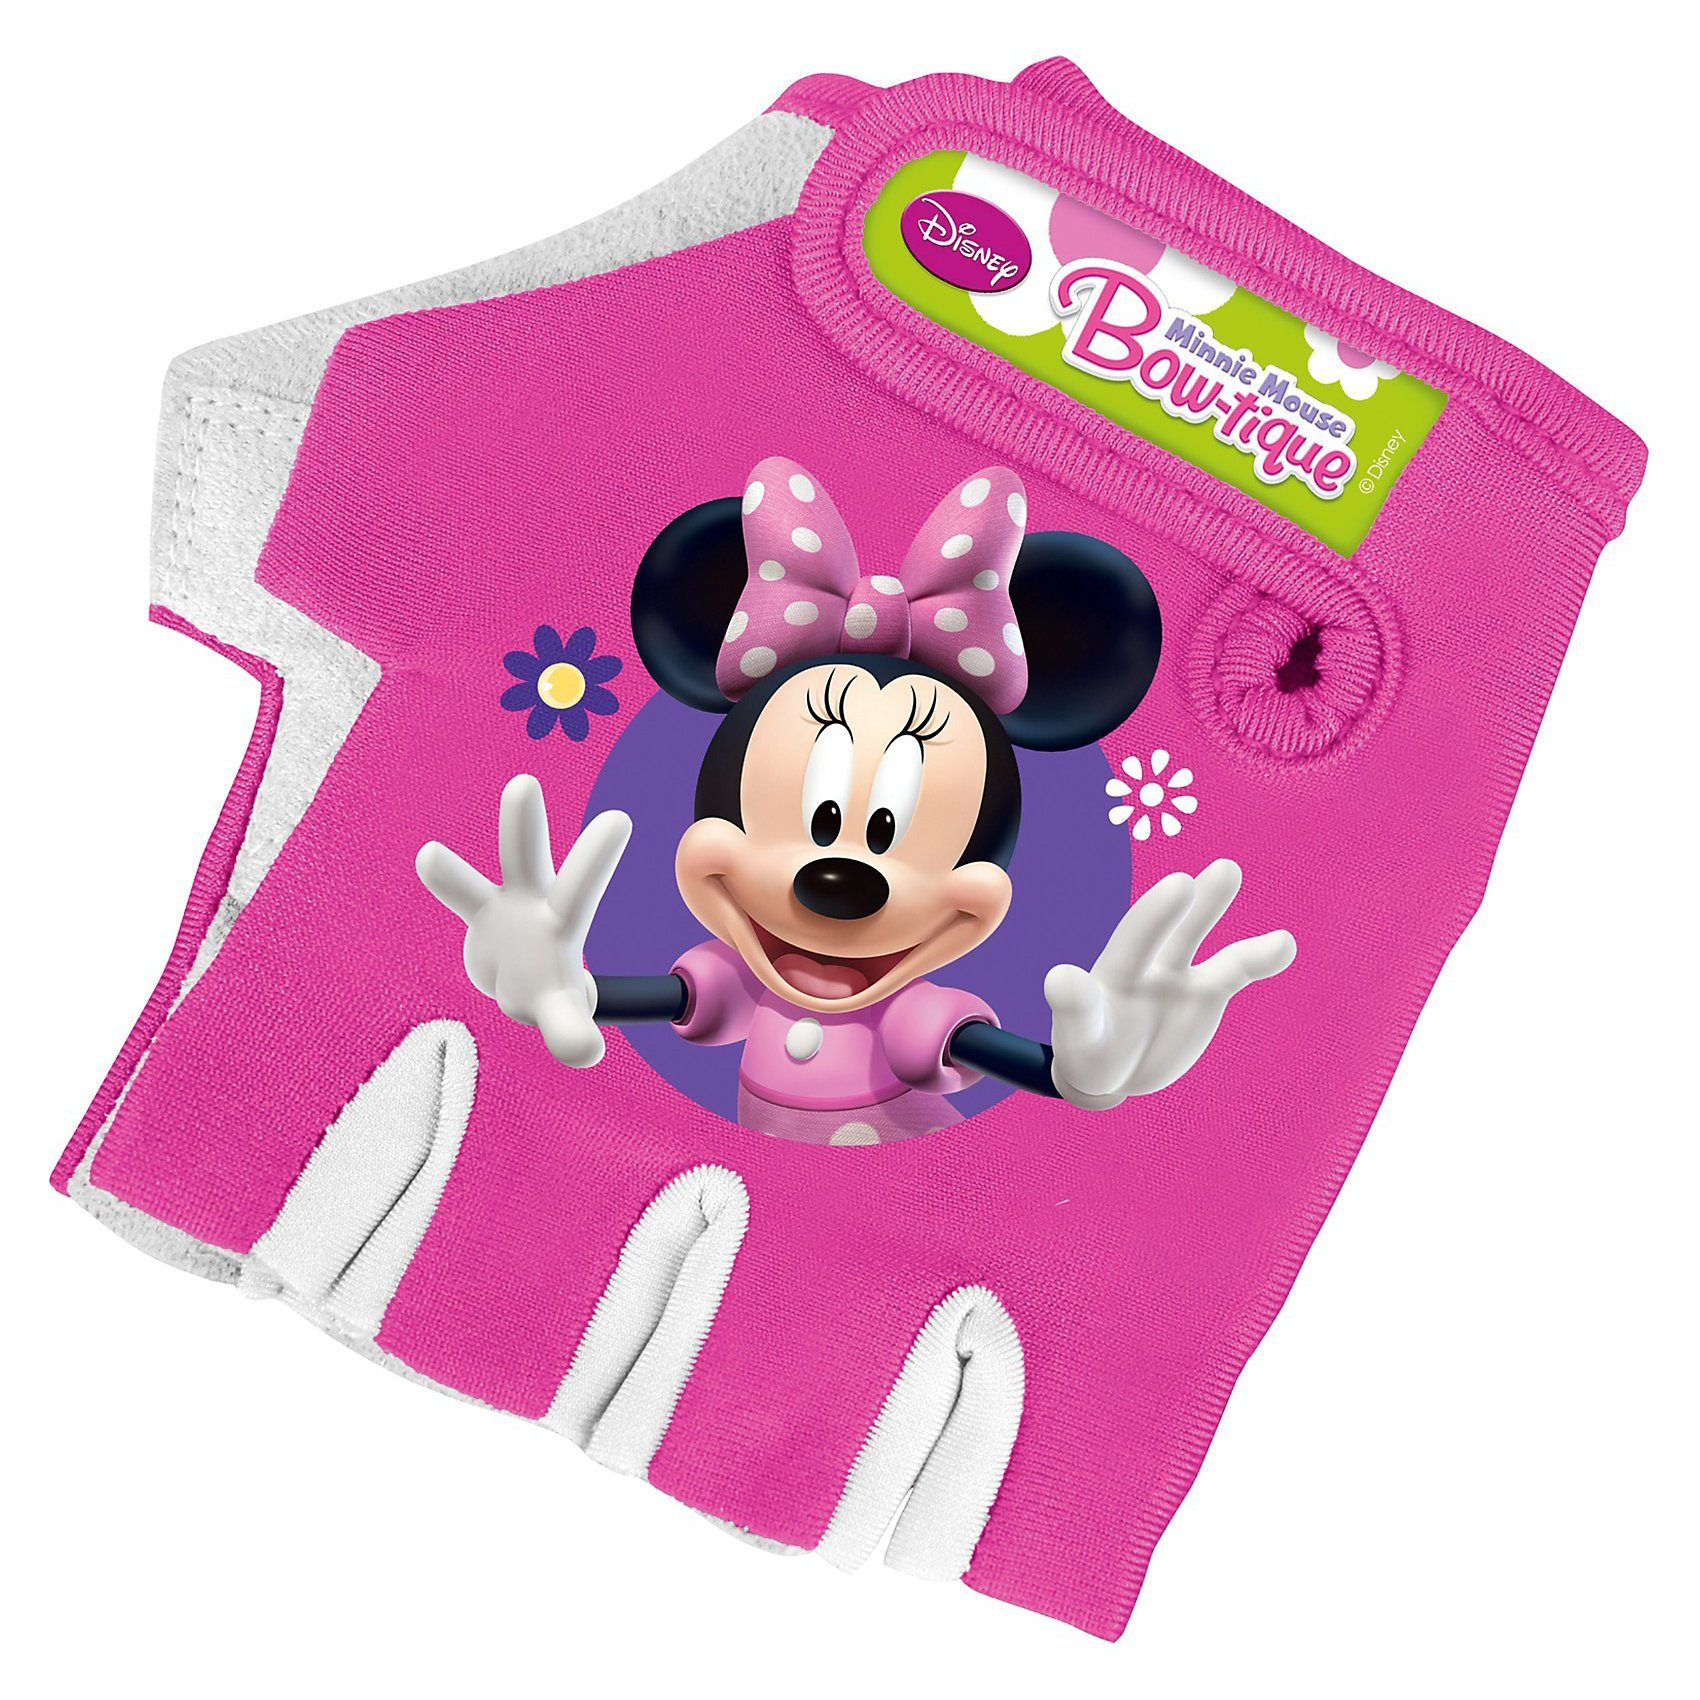 Stamp Minnie Mouse Fahrradhandschuhe